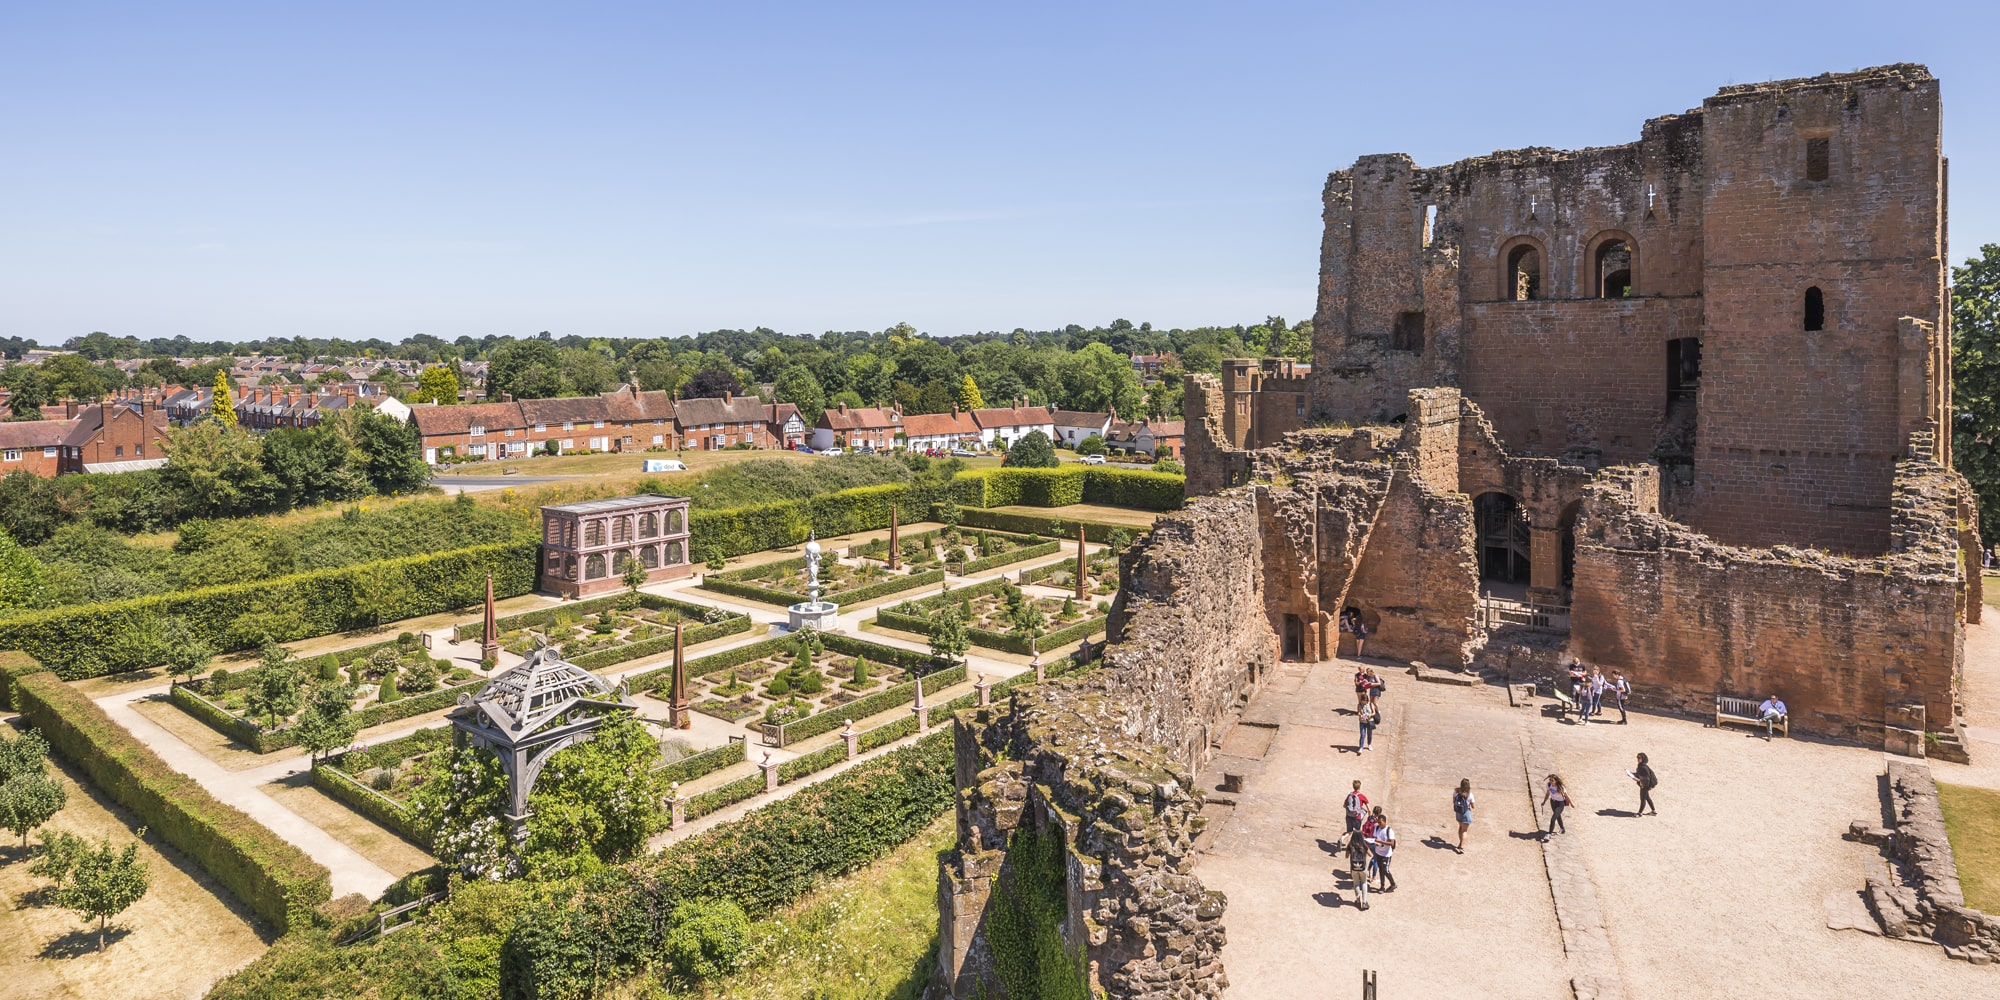 Entdecken Sie Kenilworth Castle in Warwickshire. © England's Waterways